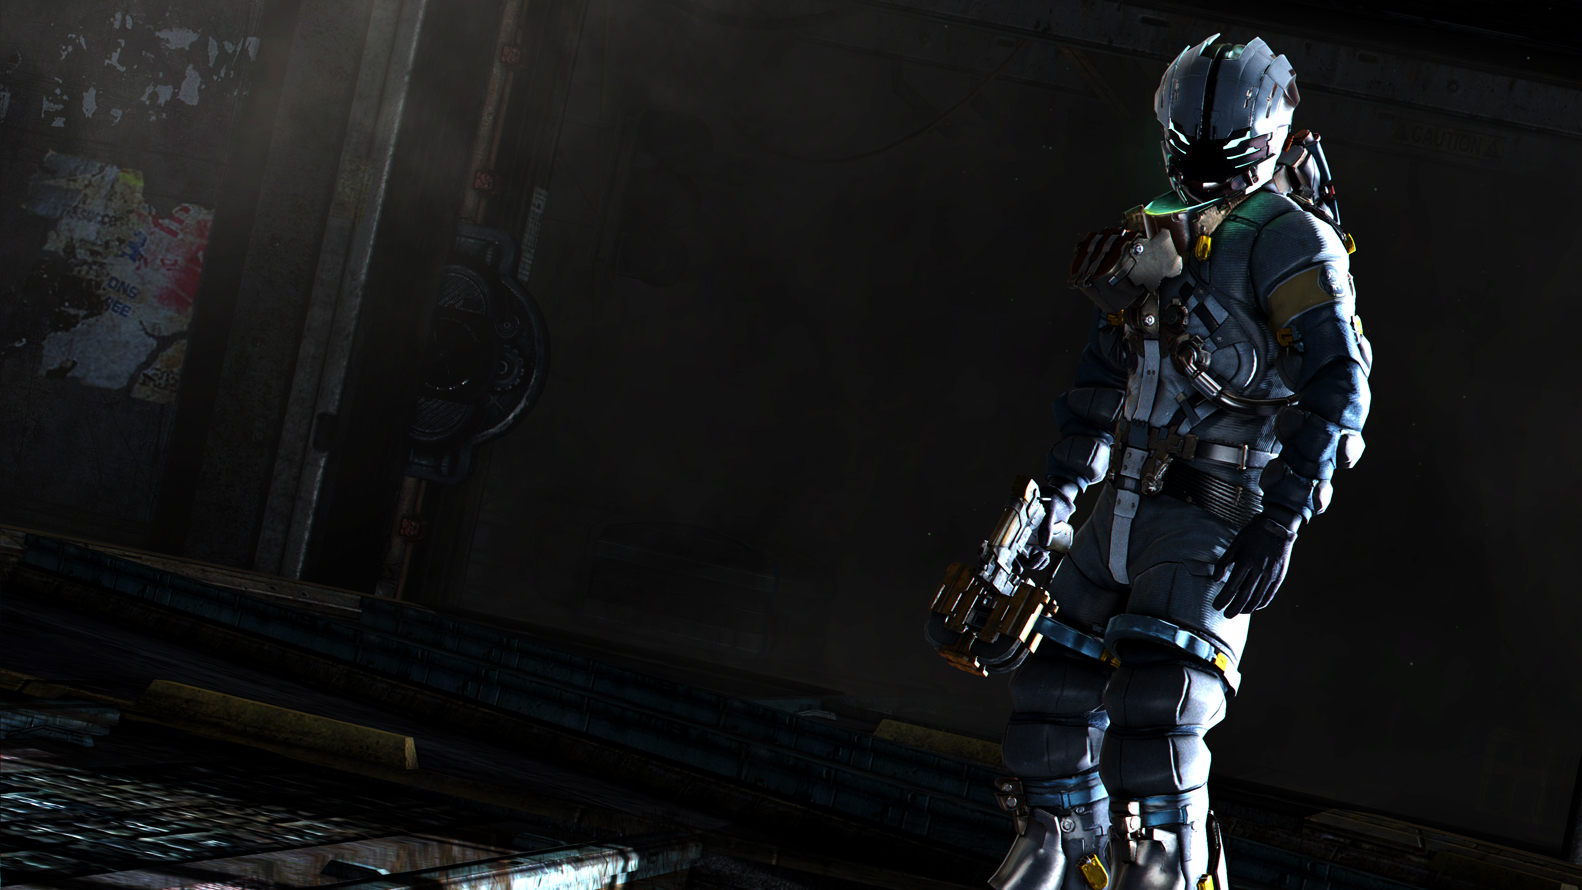 Dead Space 3 2013 Game HD Wallpapers Download Wallpapers in HD 1582x890